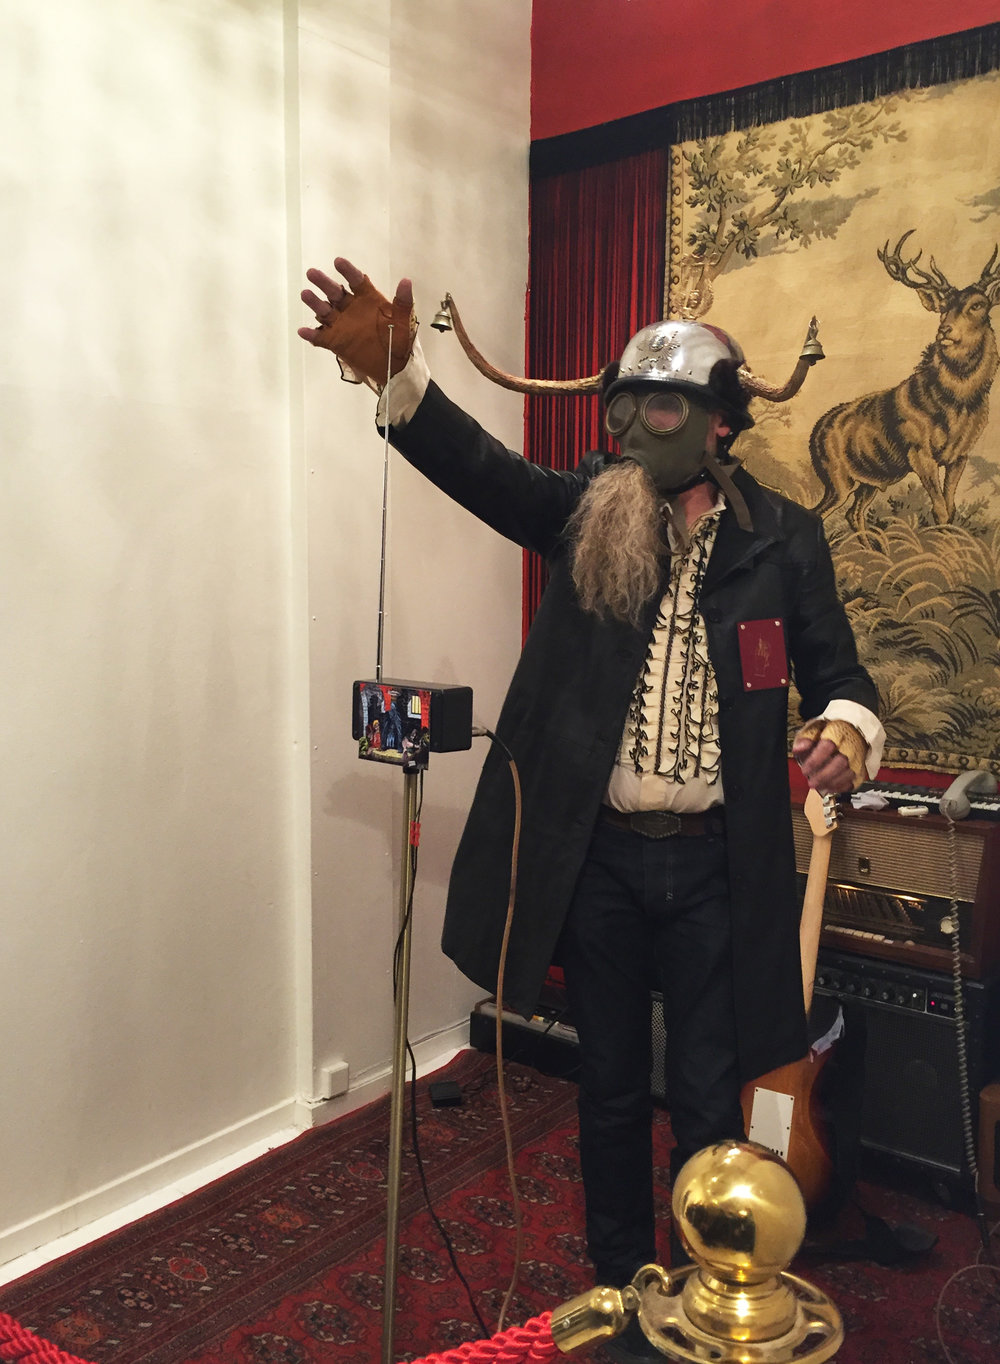 Count Pukebeard Live at Erik Axl Sund Gallery, Stockholm, 2016